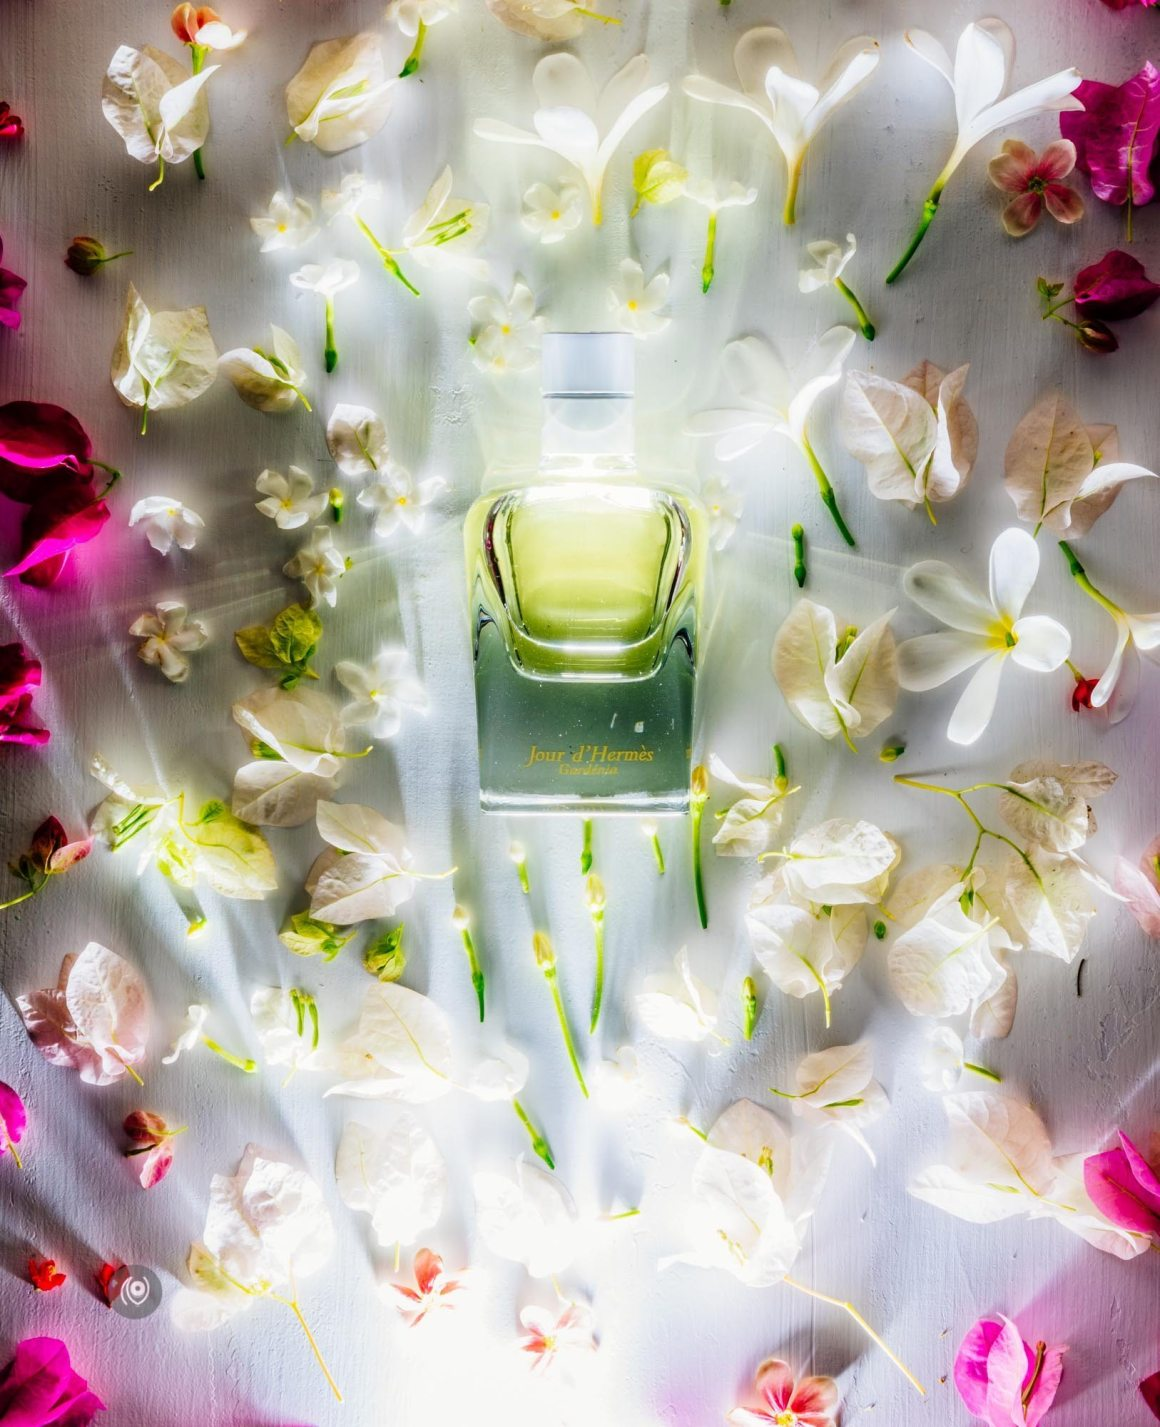 FragranceOfTheMonth-Naina.co-Jour-Hermes-Gardenia-EyesForLuxury-10